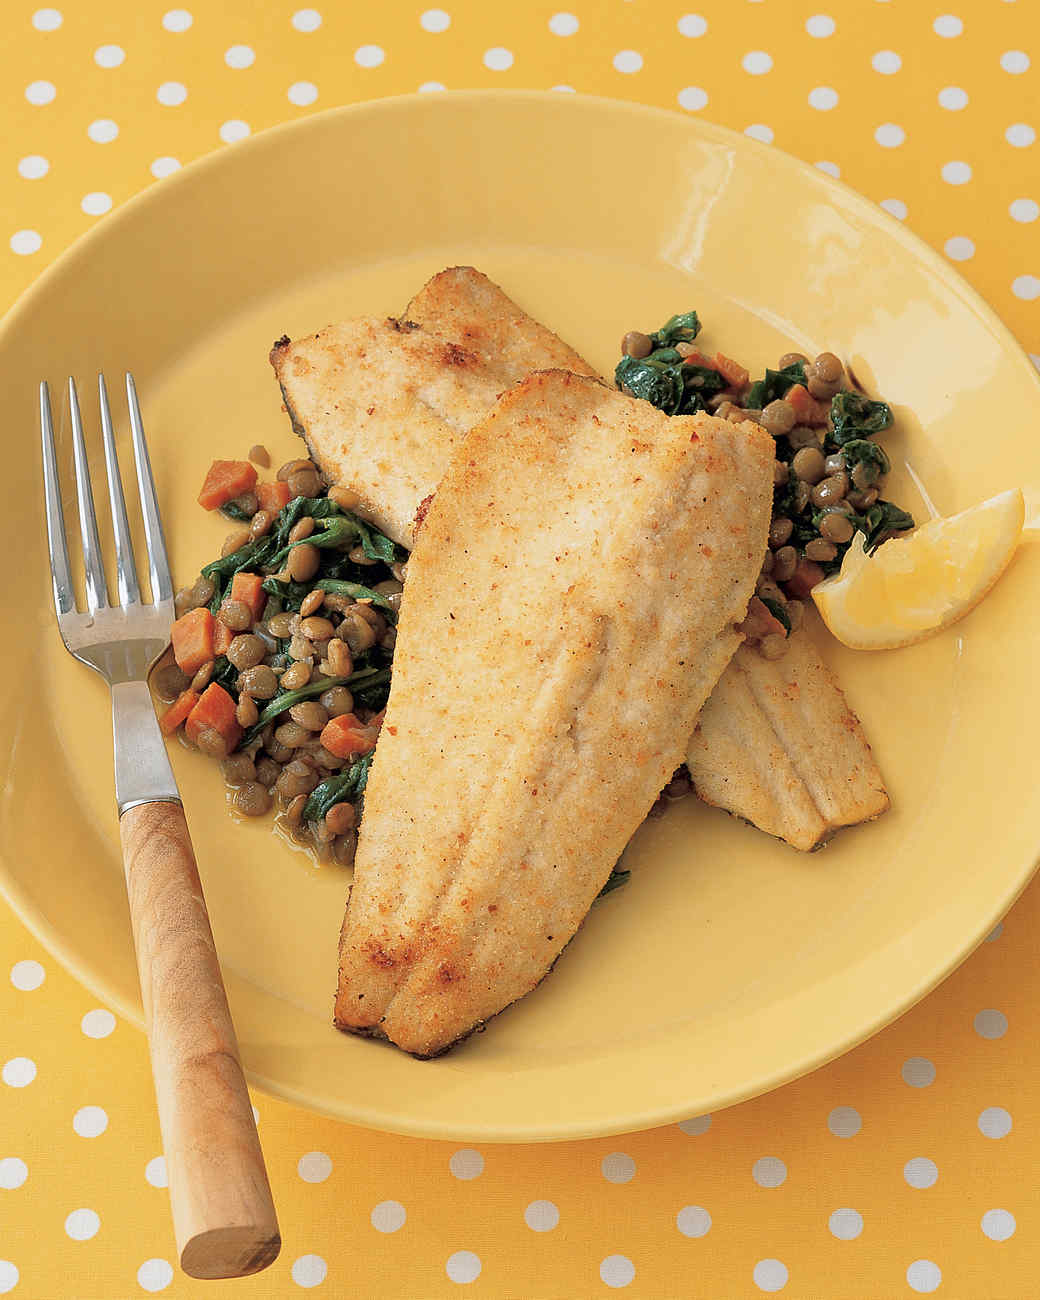 Fried trout - a delicious source of omega-3 fatty acids 43